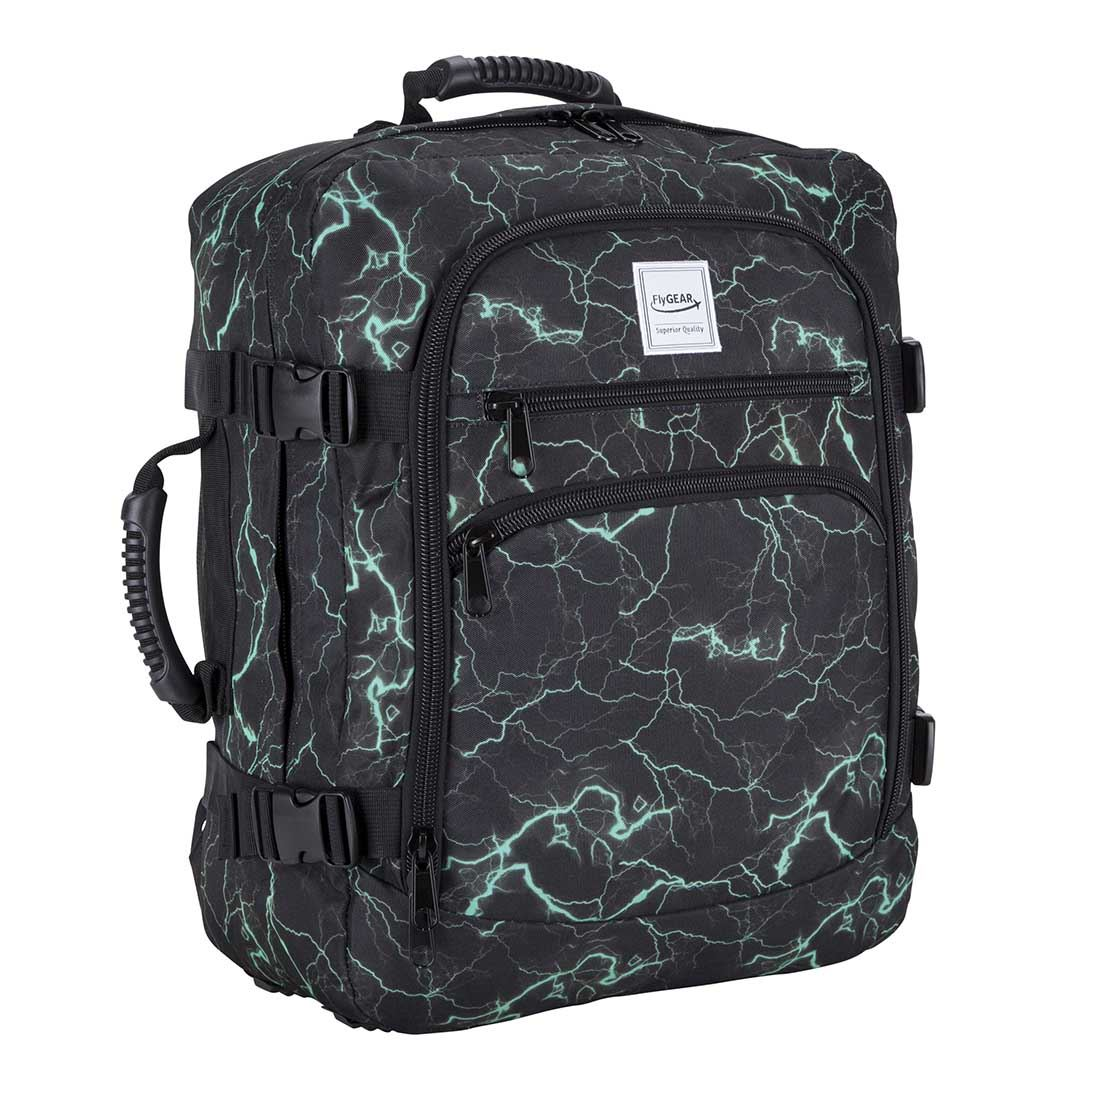 Travel Hand Luggage Backpack- Fenix Toulouse Handball dcf8acc4bce1f